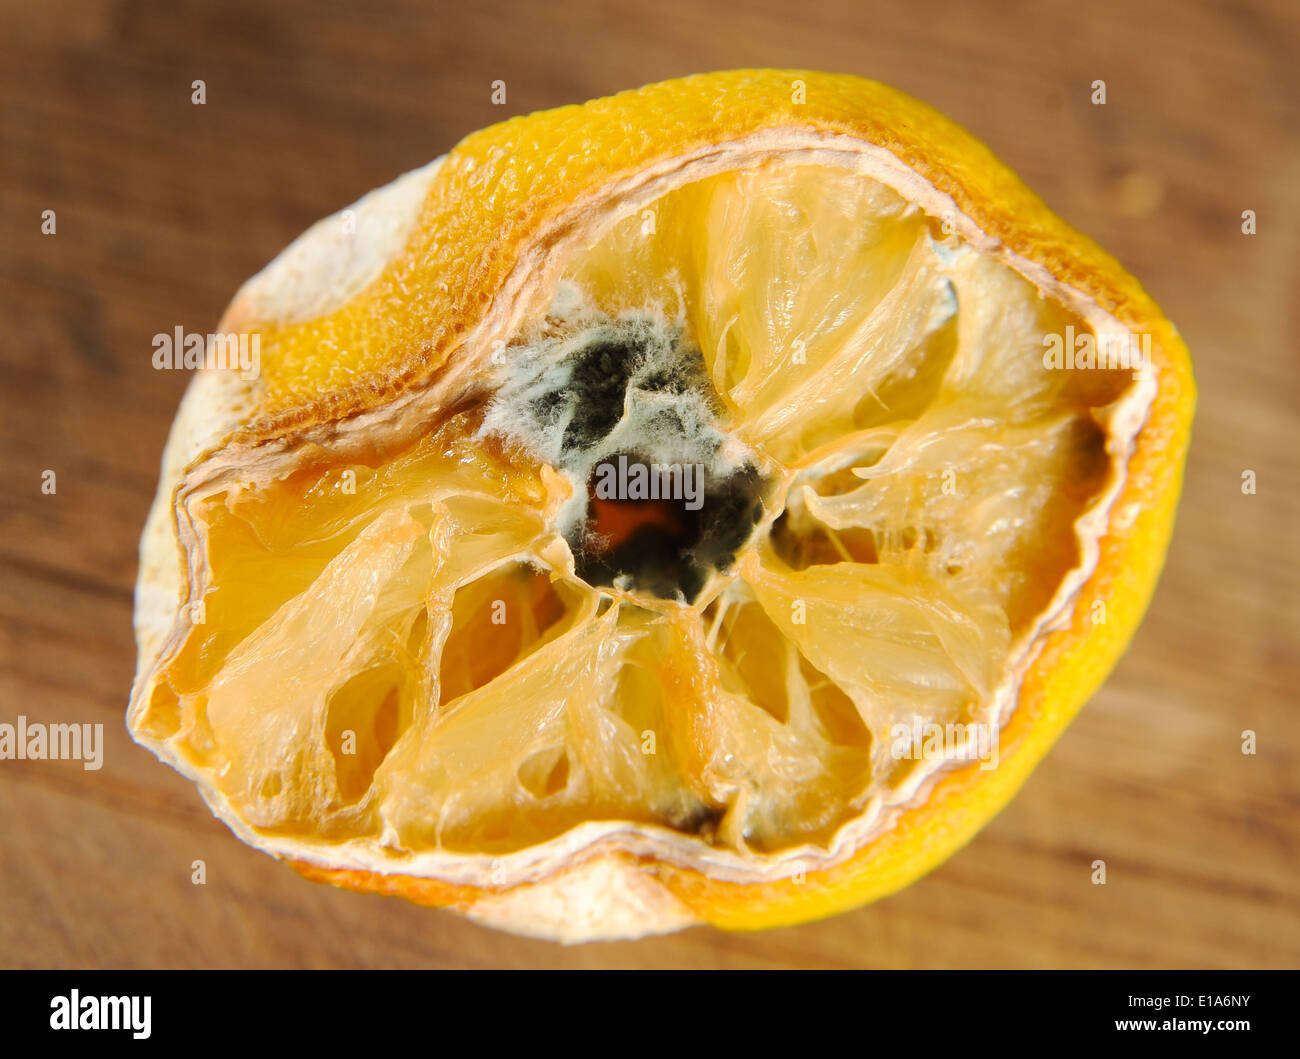 Penicillin mould growing on an old lemon fruit that is passed its best - Stock Image